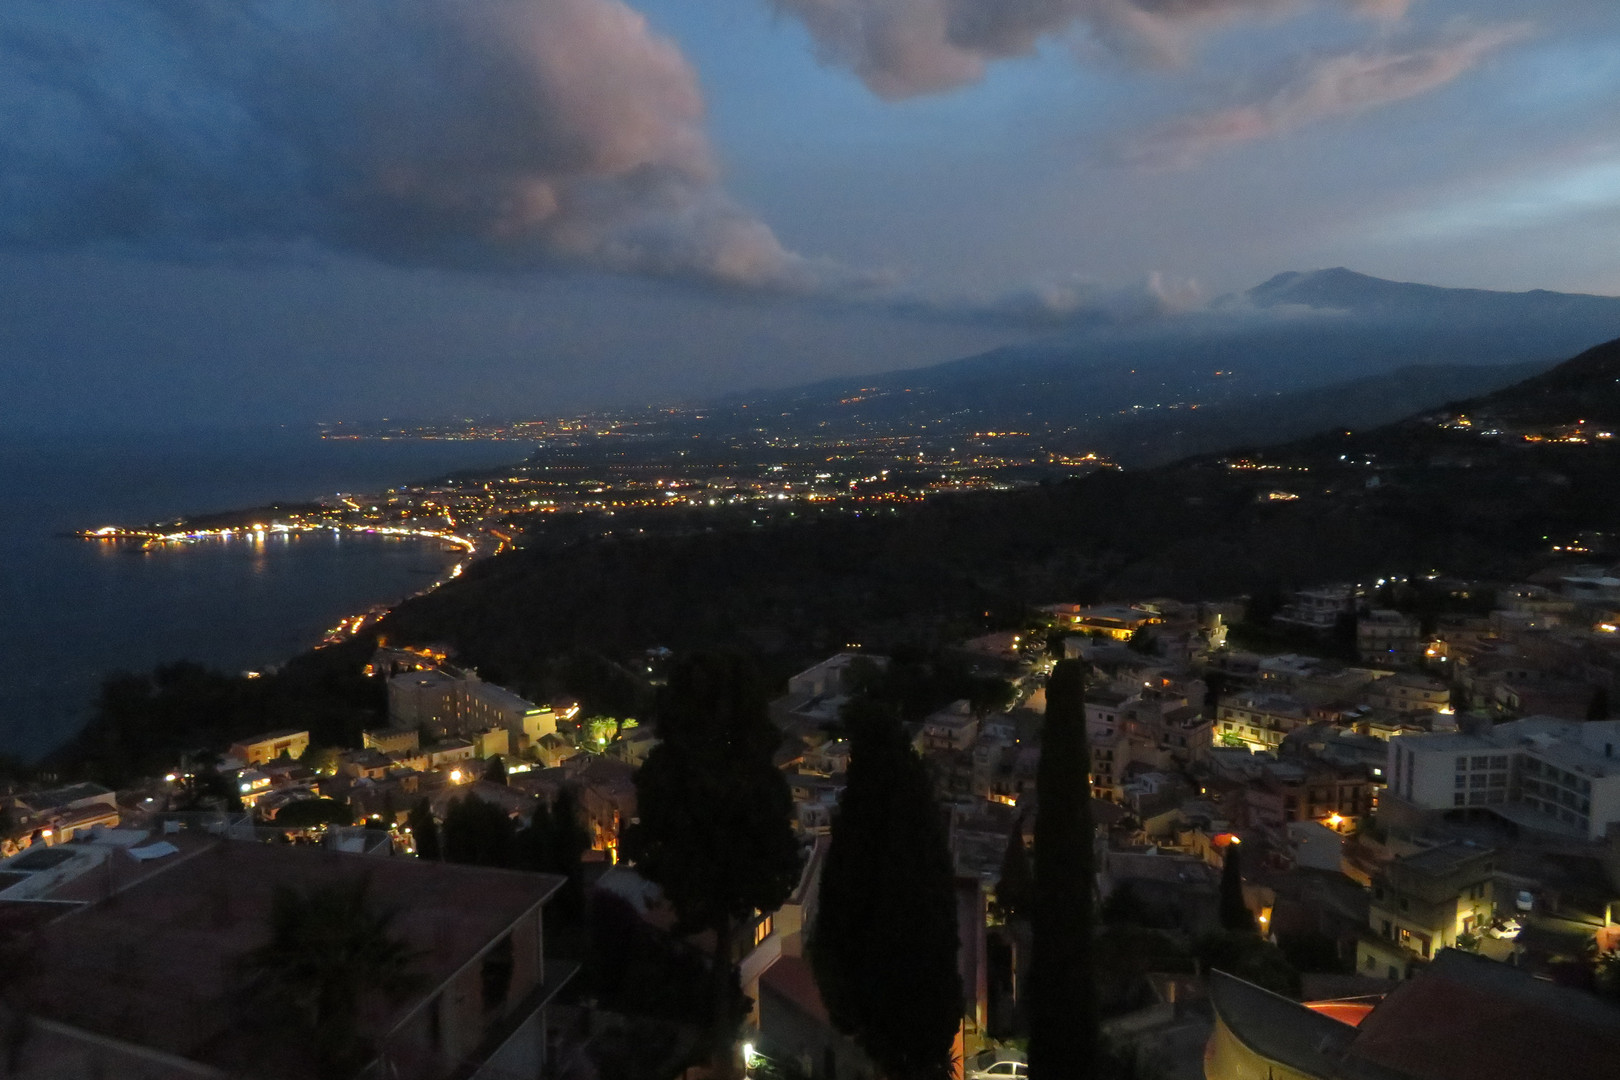 Taormina Villa Angela best night view Italy 2018 IMG_5336.JPG